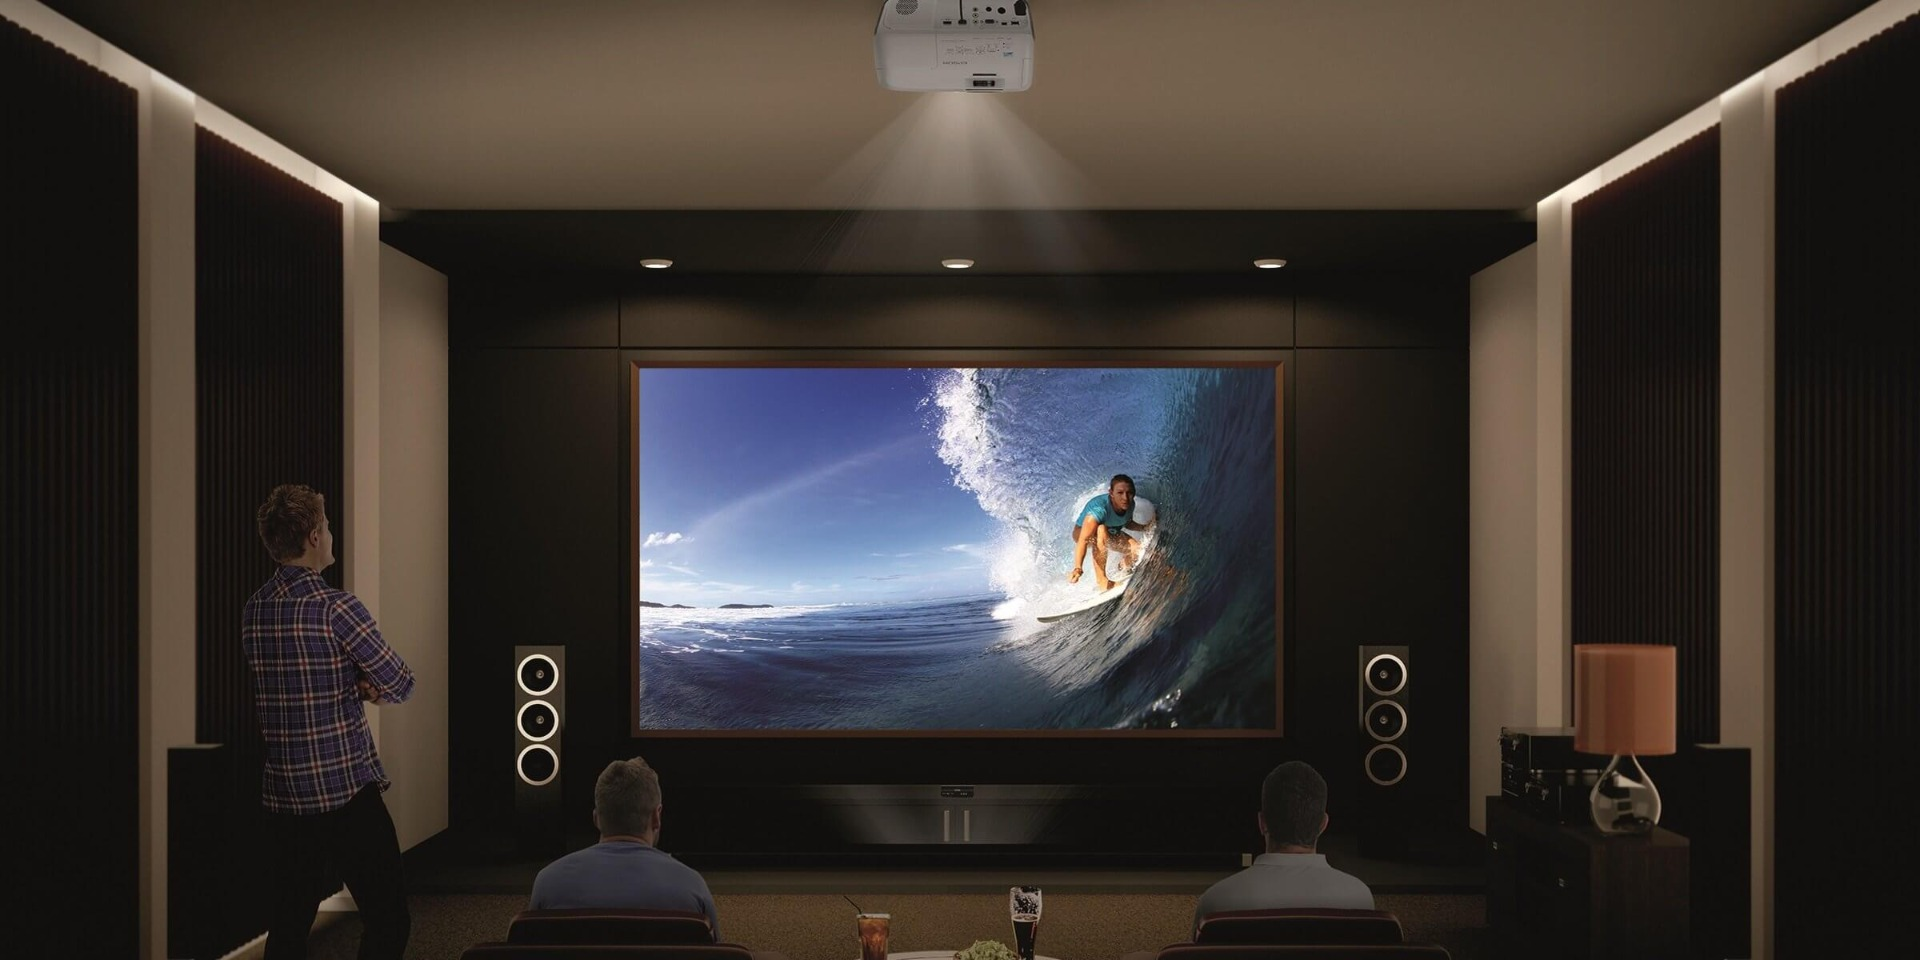 Projector| Home theater| GoSho| hdmi| usb| wireless| travel